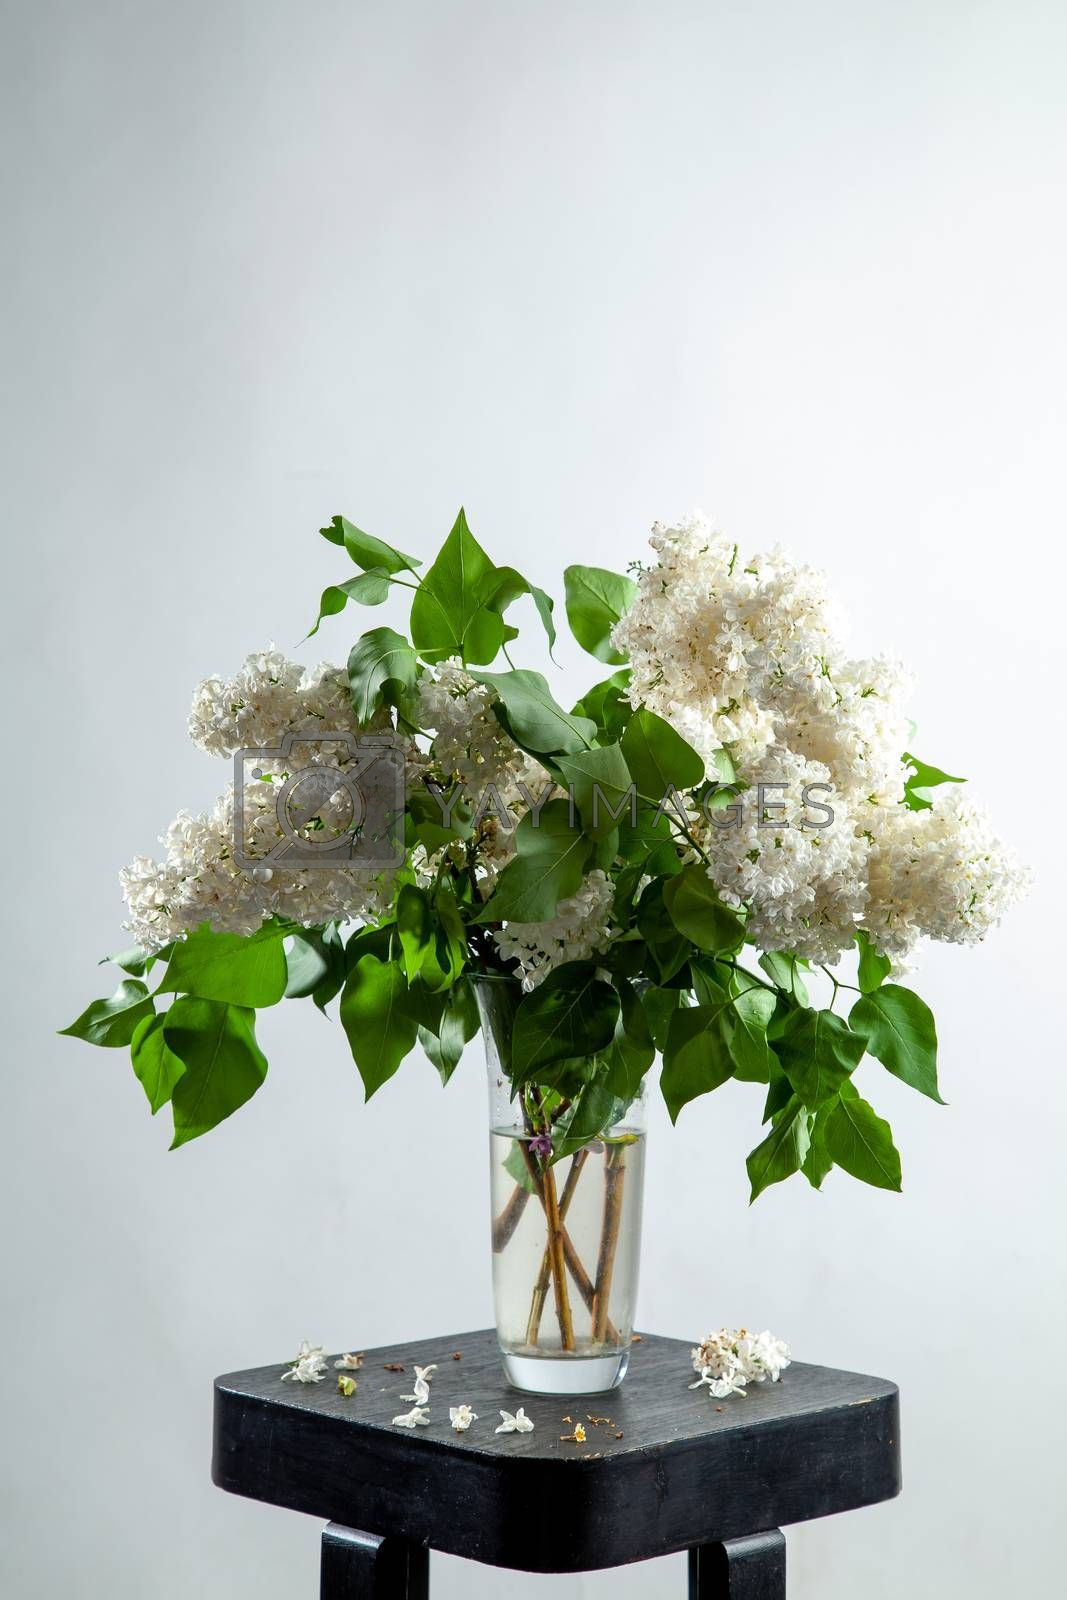 White branches of lilac in glass vase on gray background. Spring branch of blooming lilac on the table with gray background. Fallen lilac flowers on the table.